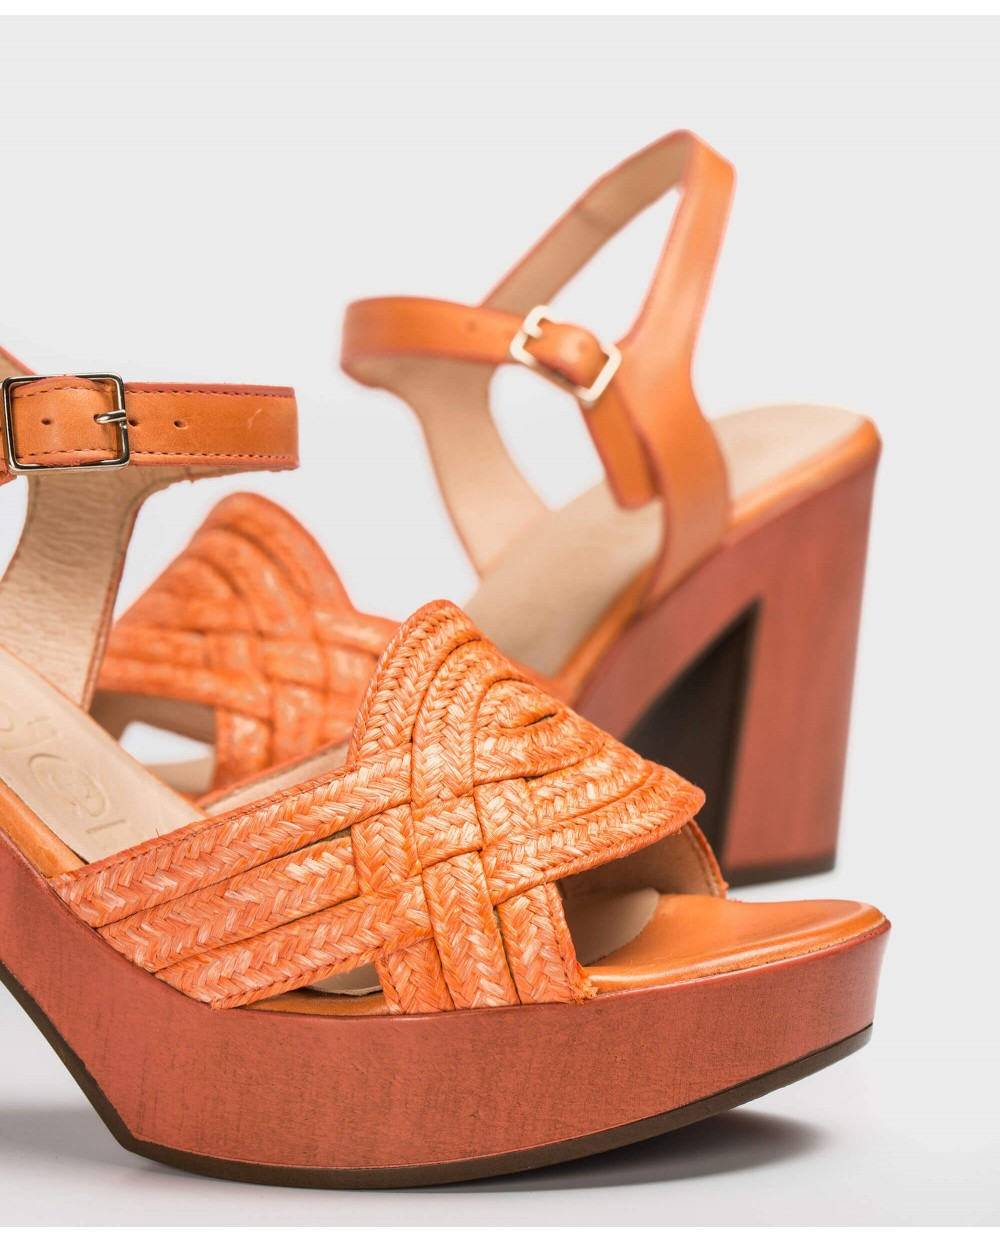 Wonders-Sandals-Platform sandal with plait